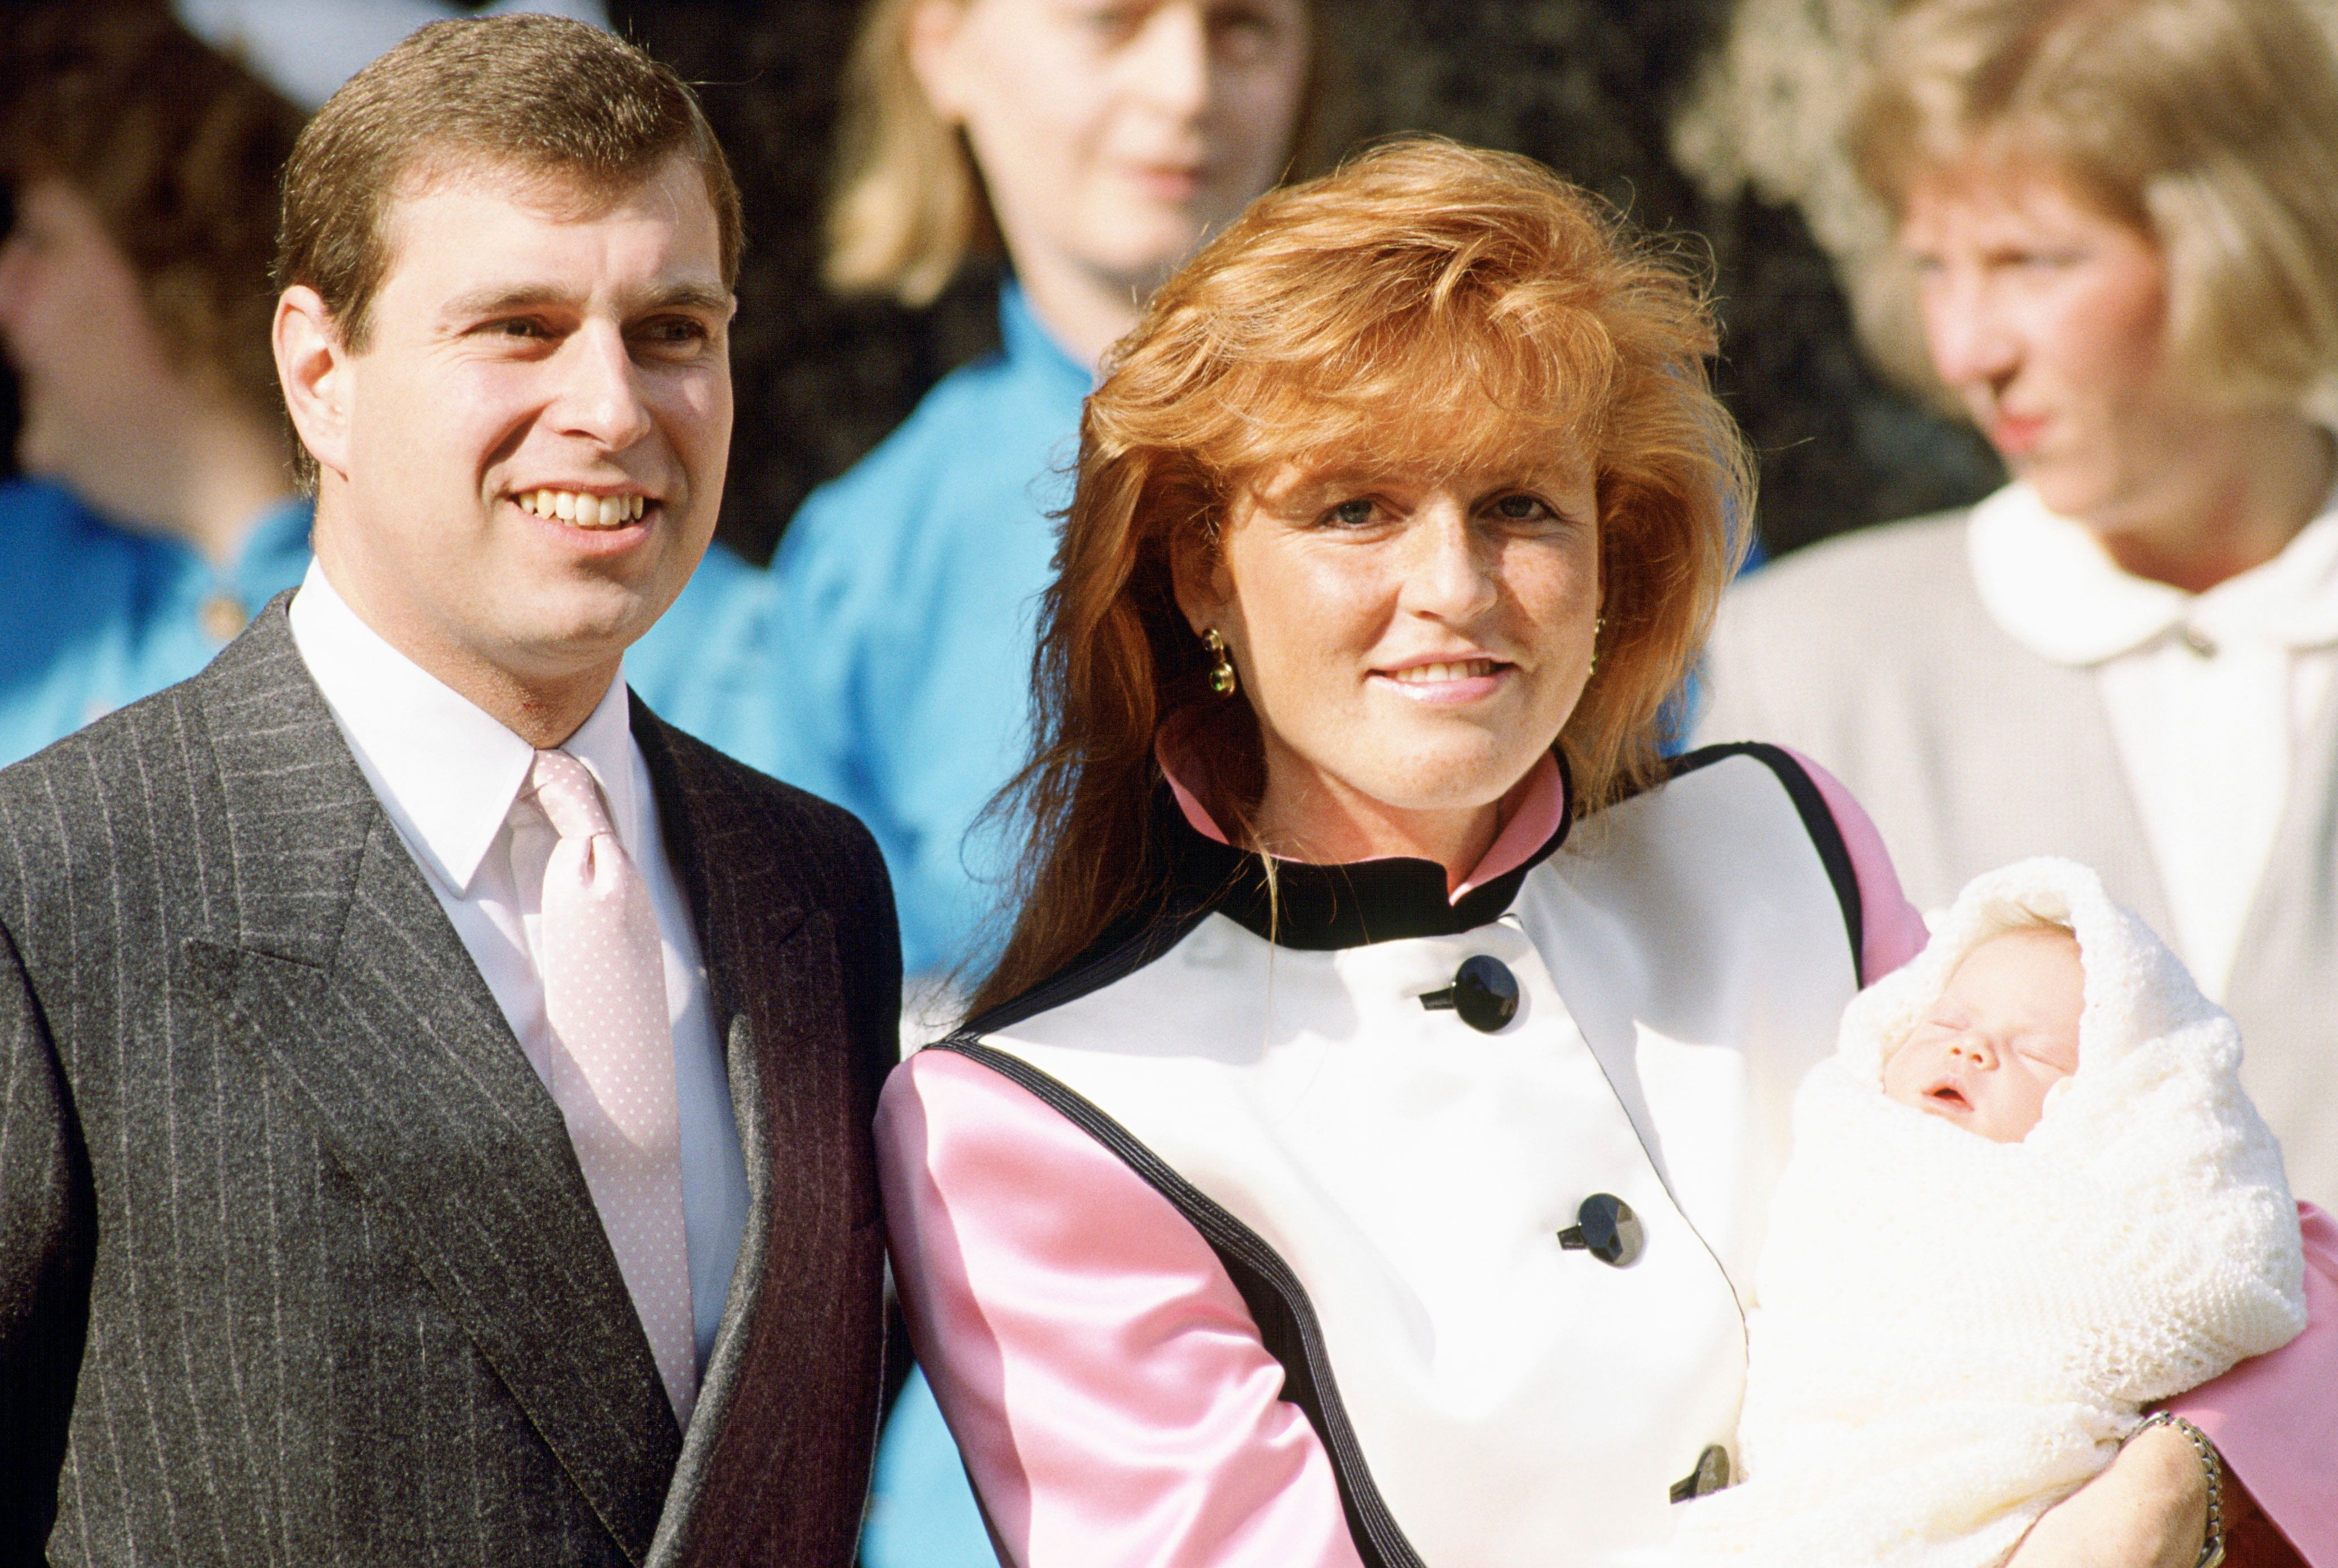 Andrew and Sarah welcomed their second daughter, Princess Eugenie, in 1990. The coupledivorced in 1996.